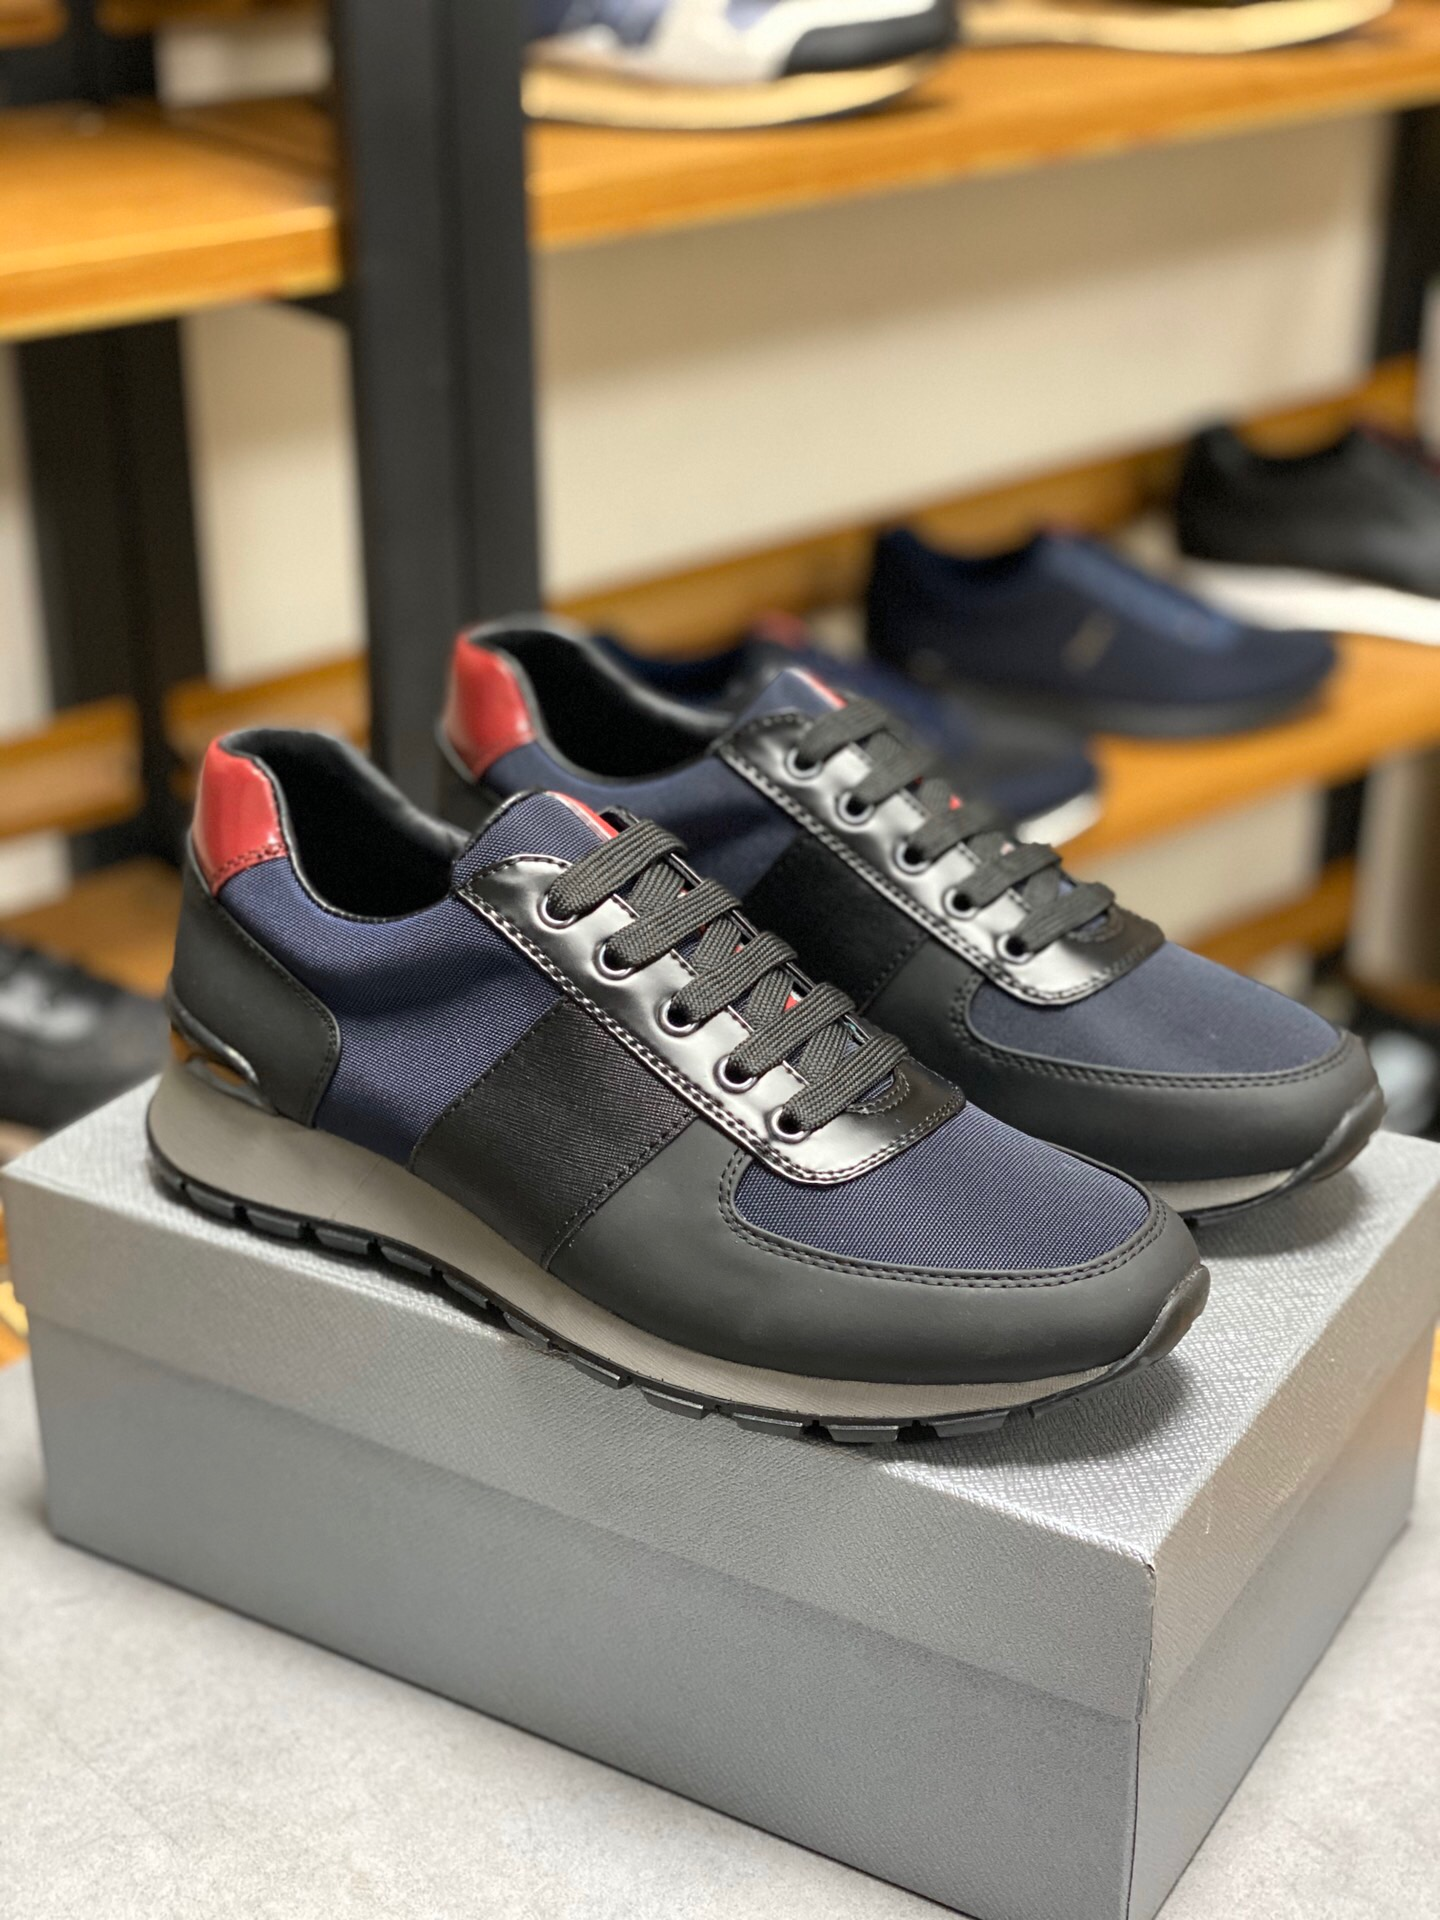 Mens shoes European station mens shoes fall / winter 2018 leather casual low top shoes mens fashion sports running shoes anti slip breathable fashionable shoes